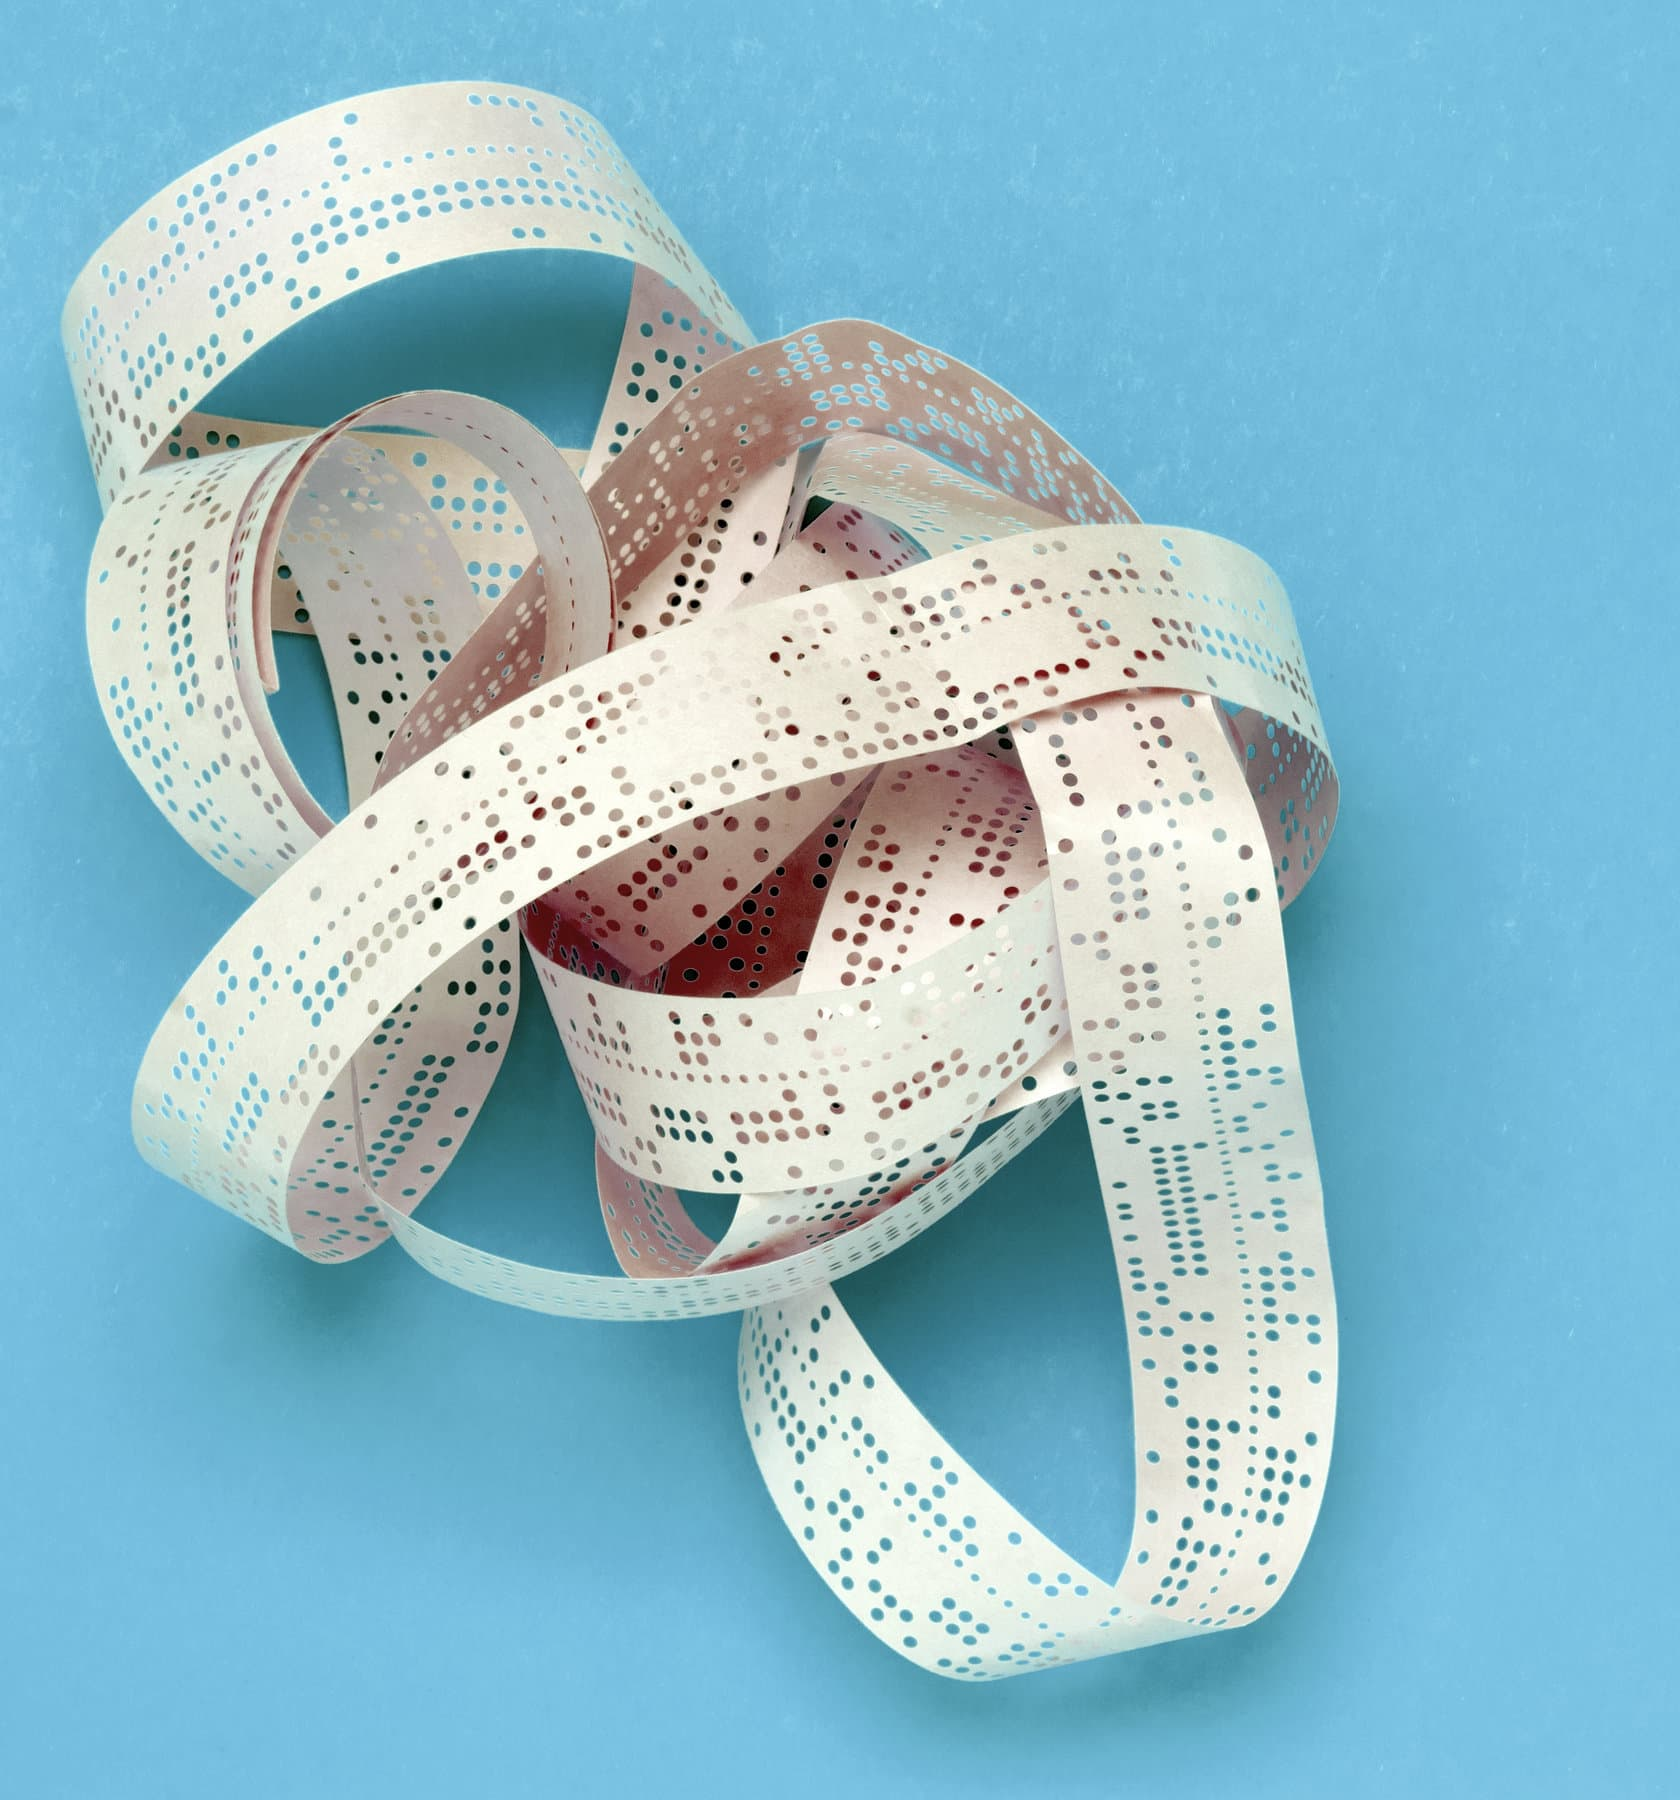 Old computer punched tape - Perforated paper programming